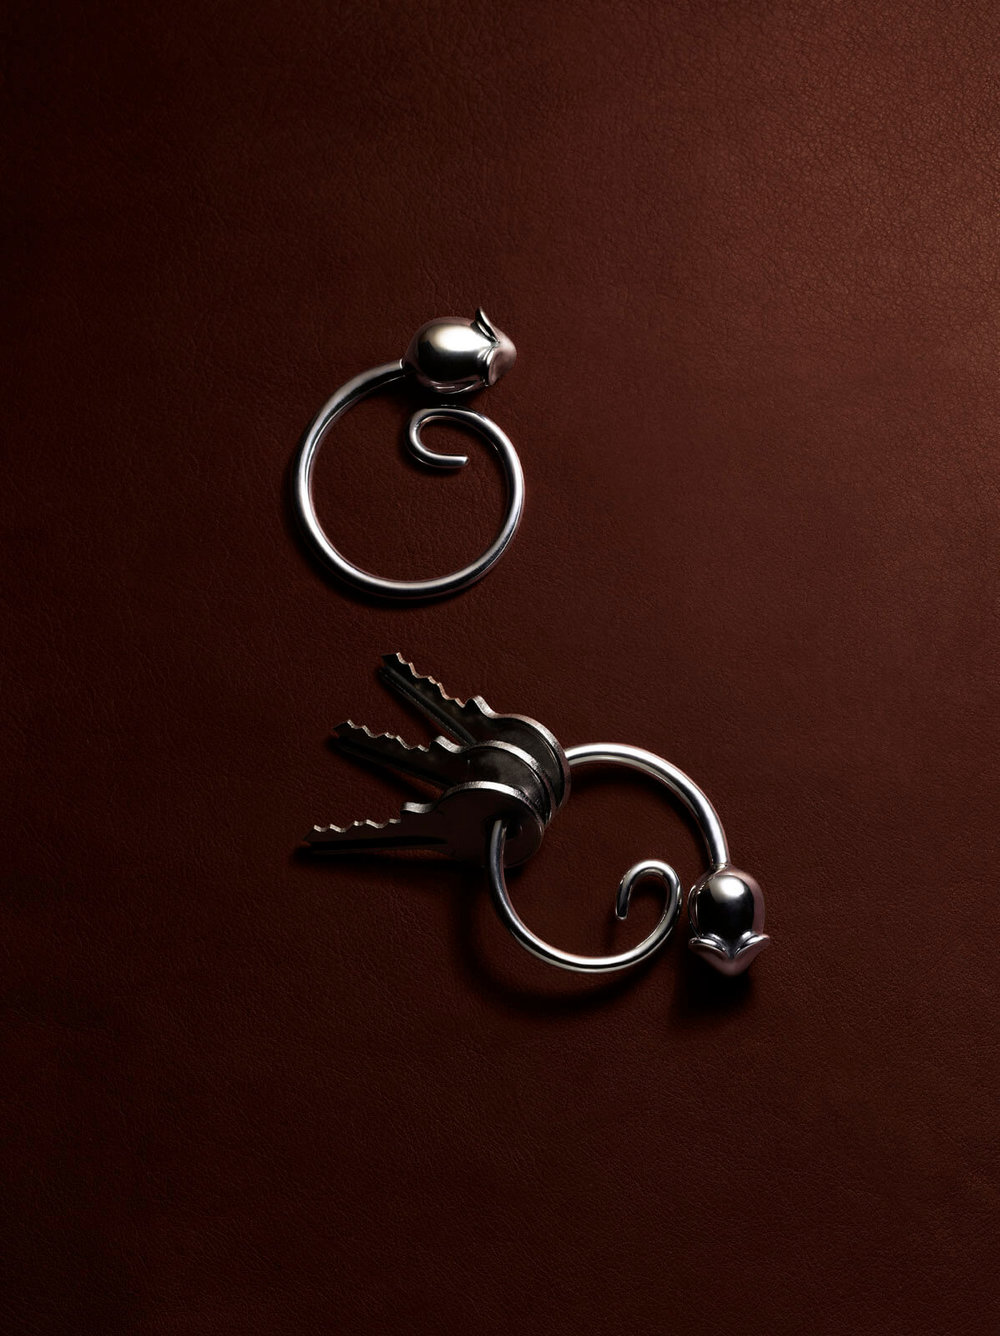 Pip, the key chain for Alessi